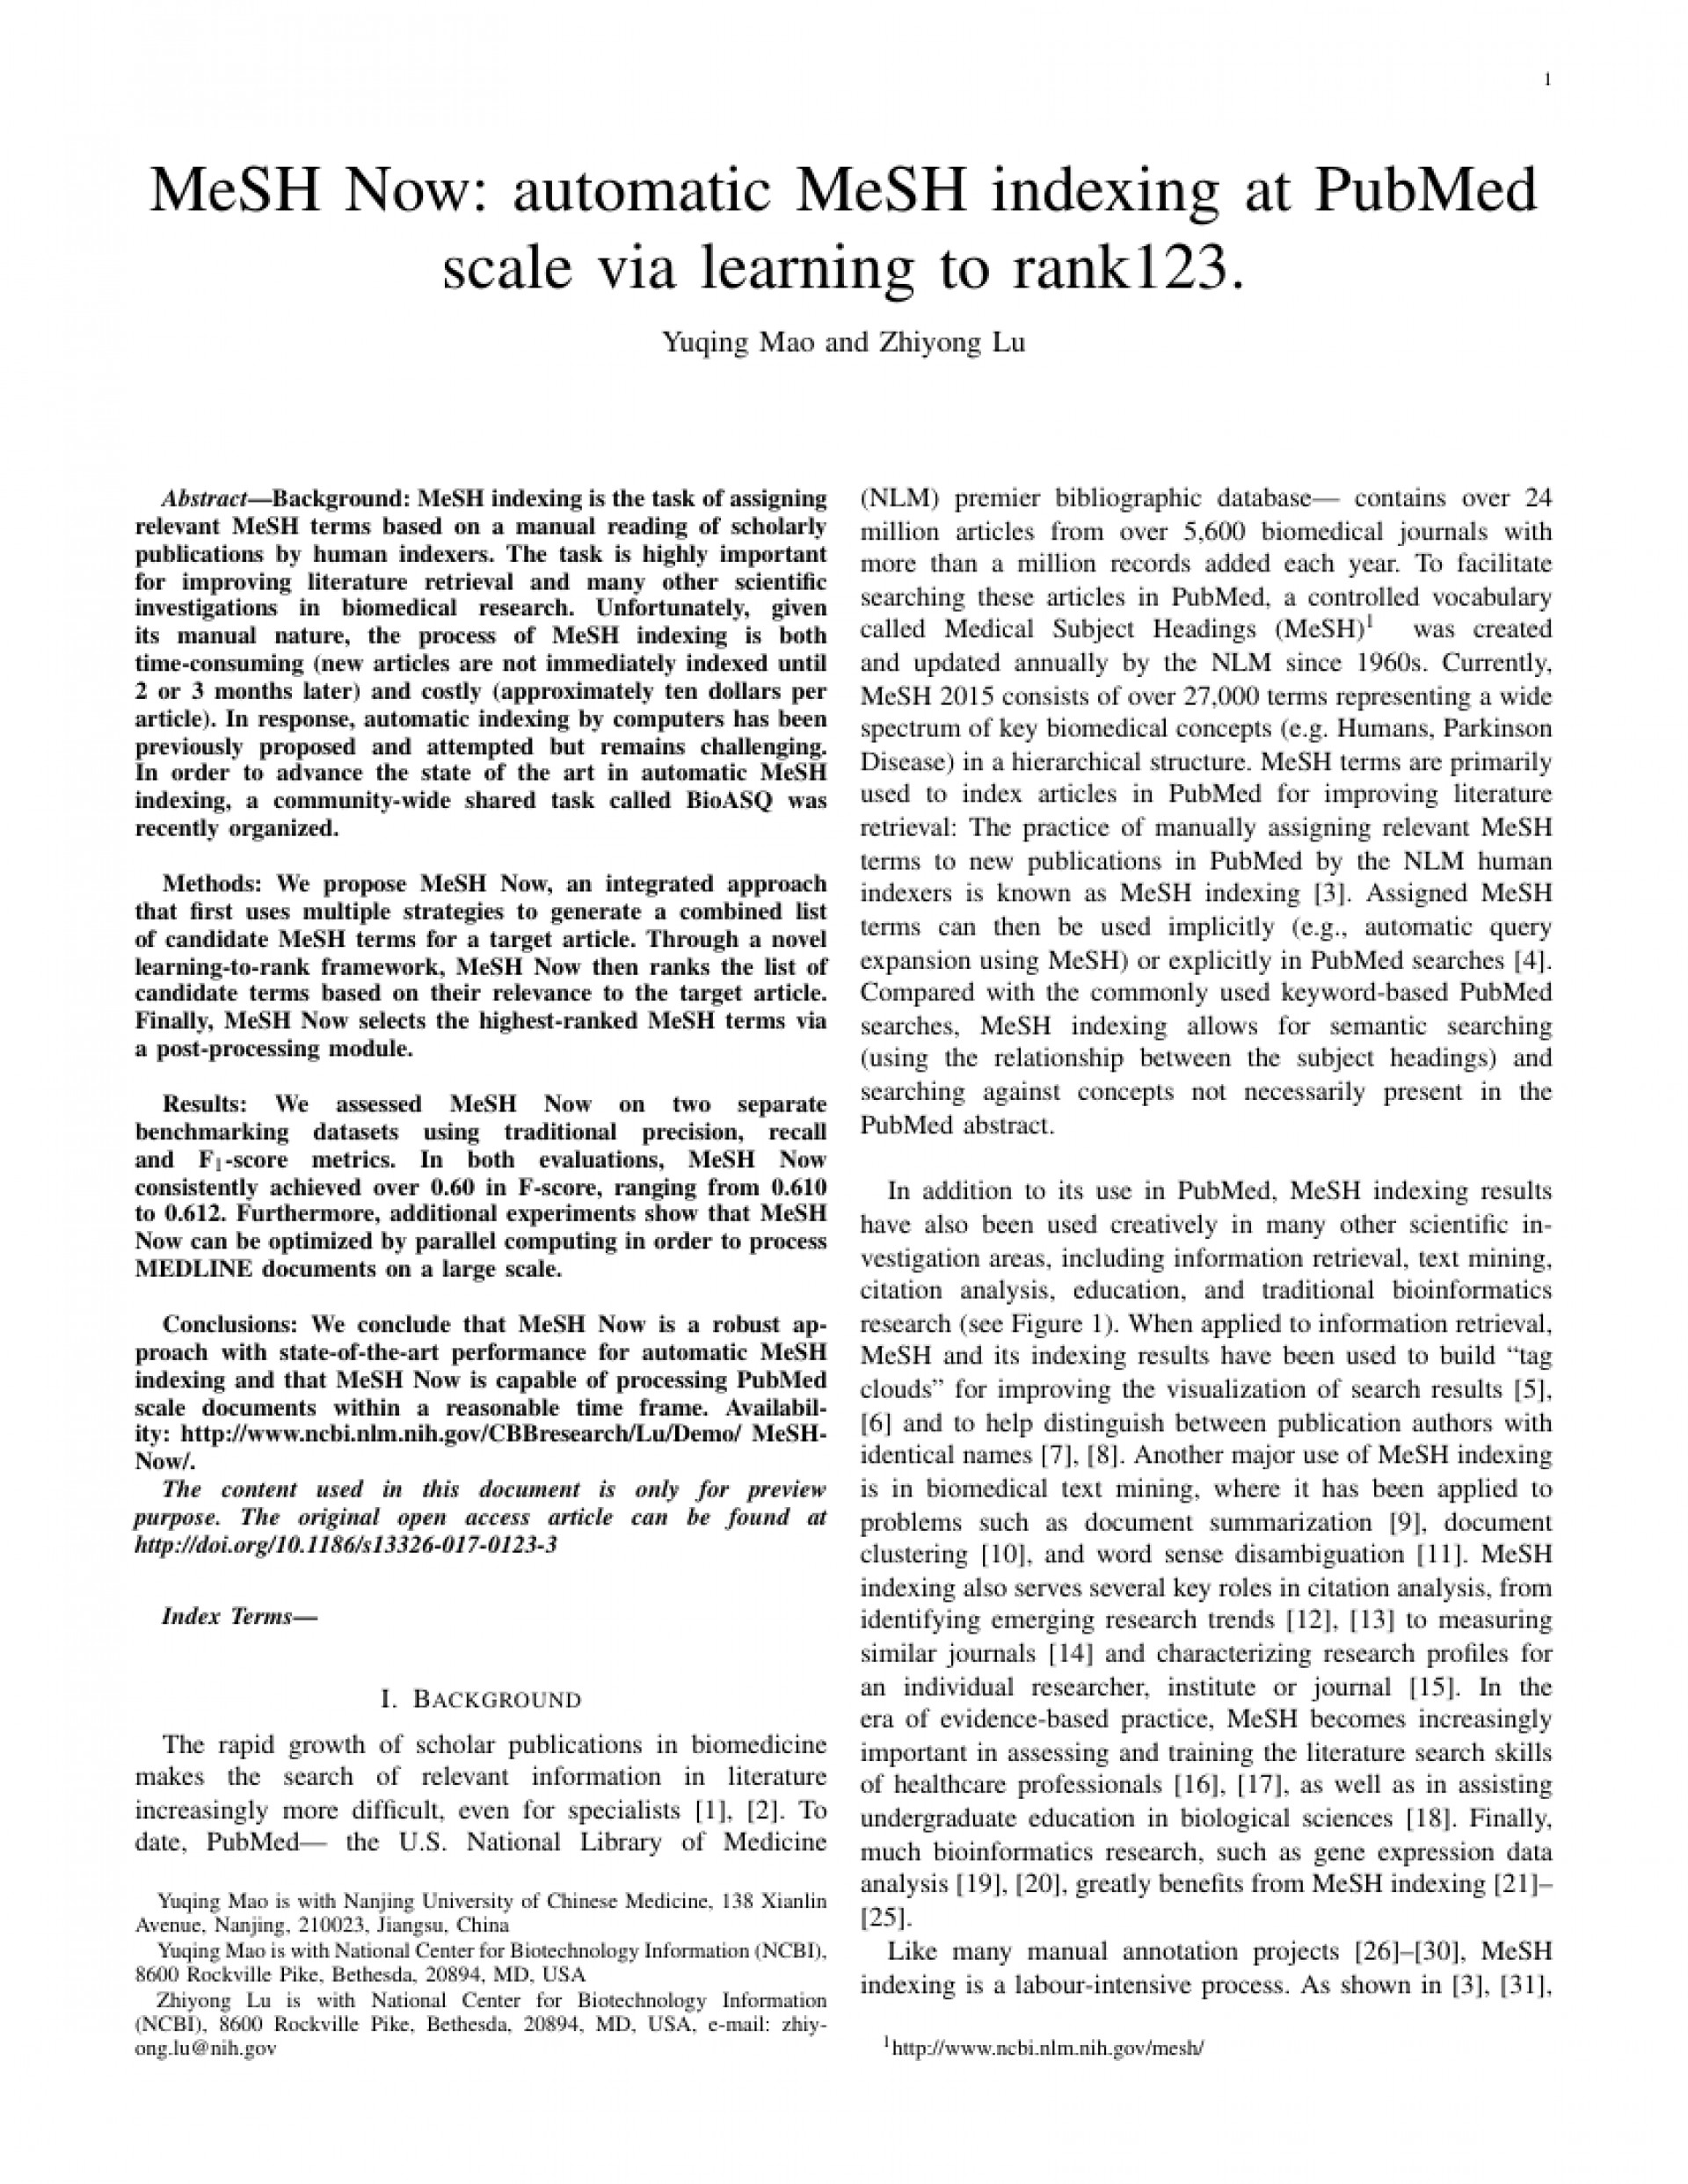 009 Ieee Research Paper Search Engine Optimization Article Imposing 1920